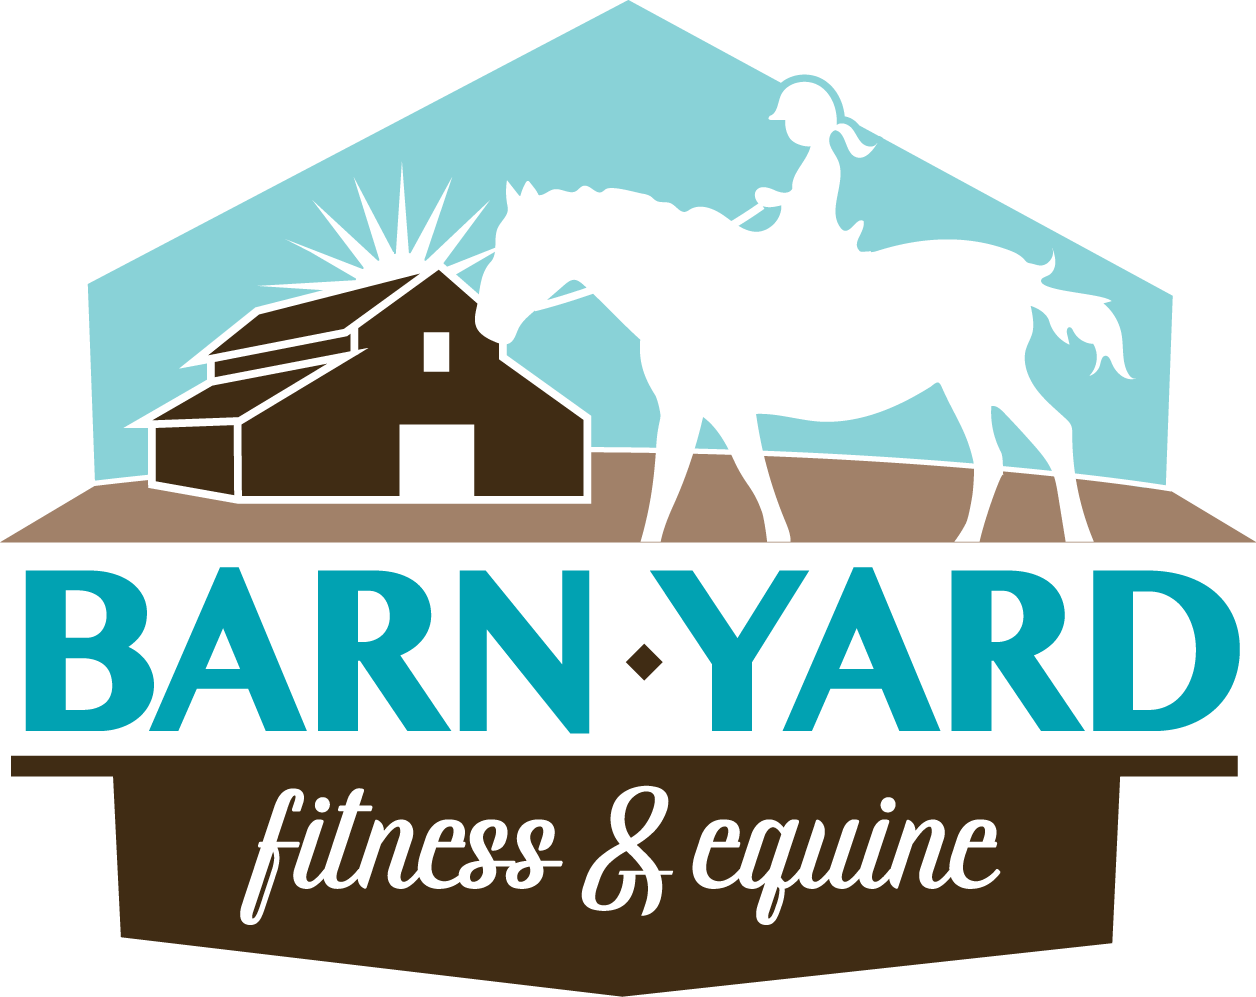 Yard a place where. Clipart barn equine